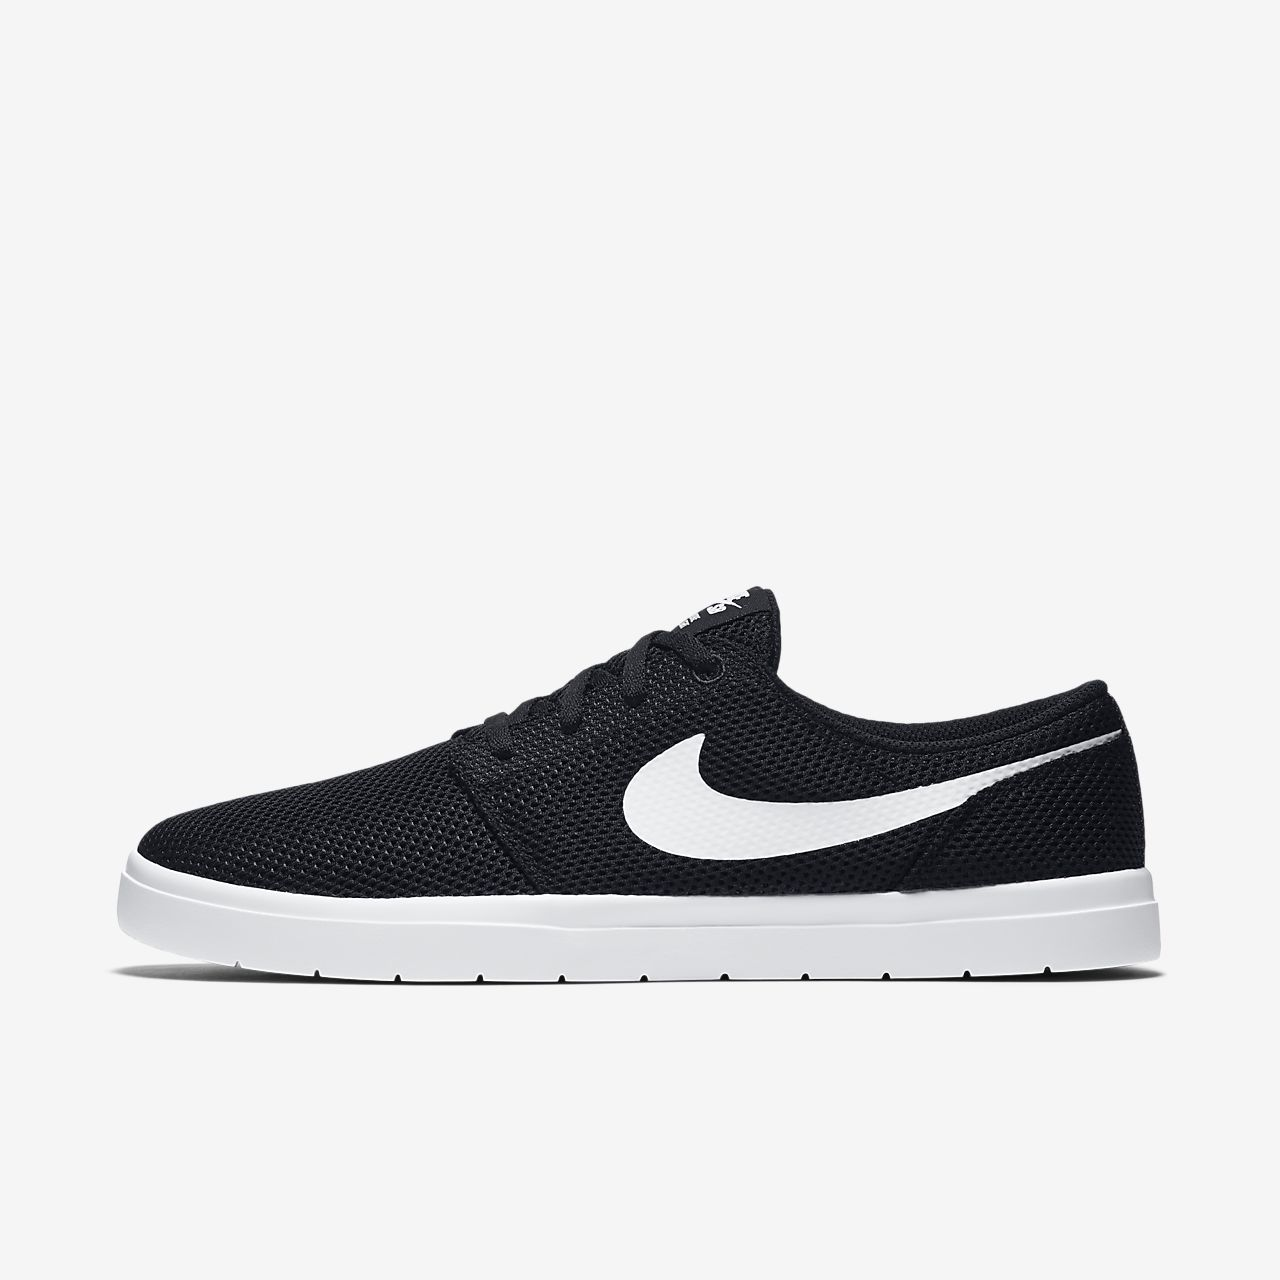 reputable site 3f926 7f6a6 ... Nike SB Portmore II Ultralight Mens Skateboarding Shoe